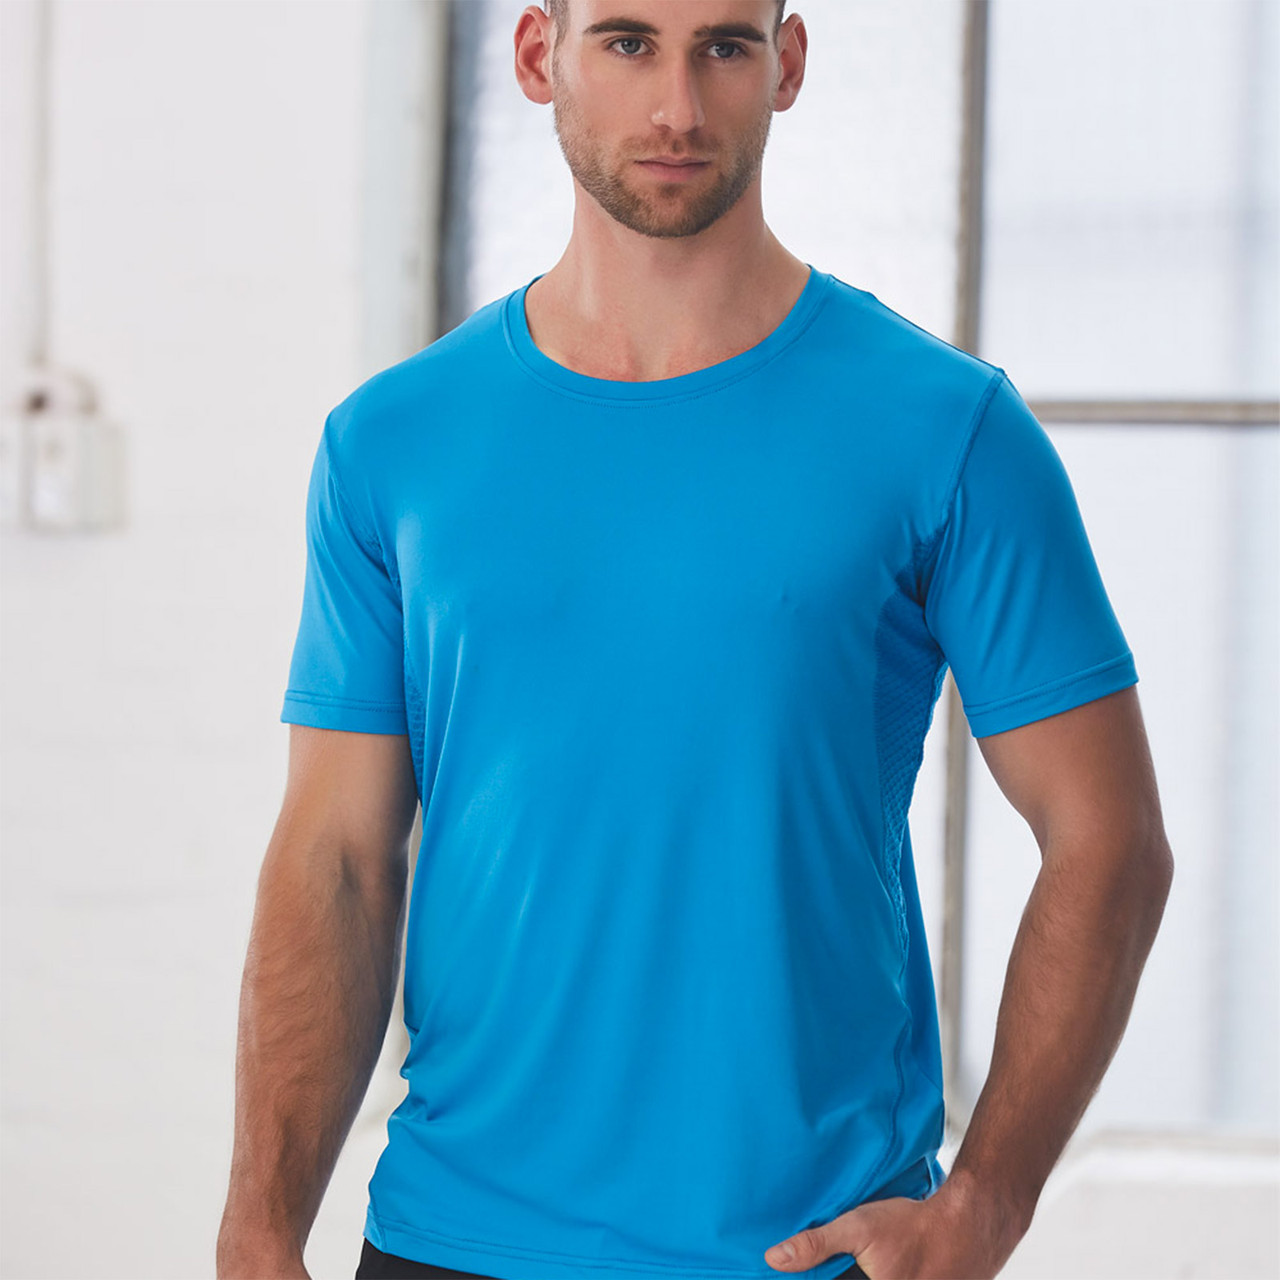 Mens Dri-Cool Athletic Performance Shirt Short Sleeve Breathable Stretchable Top